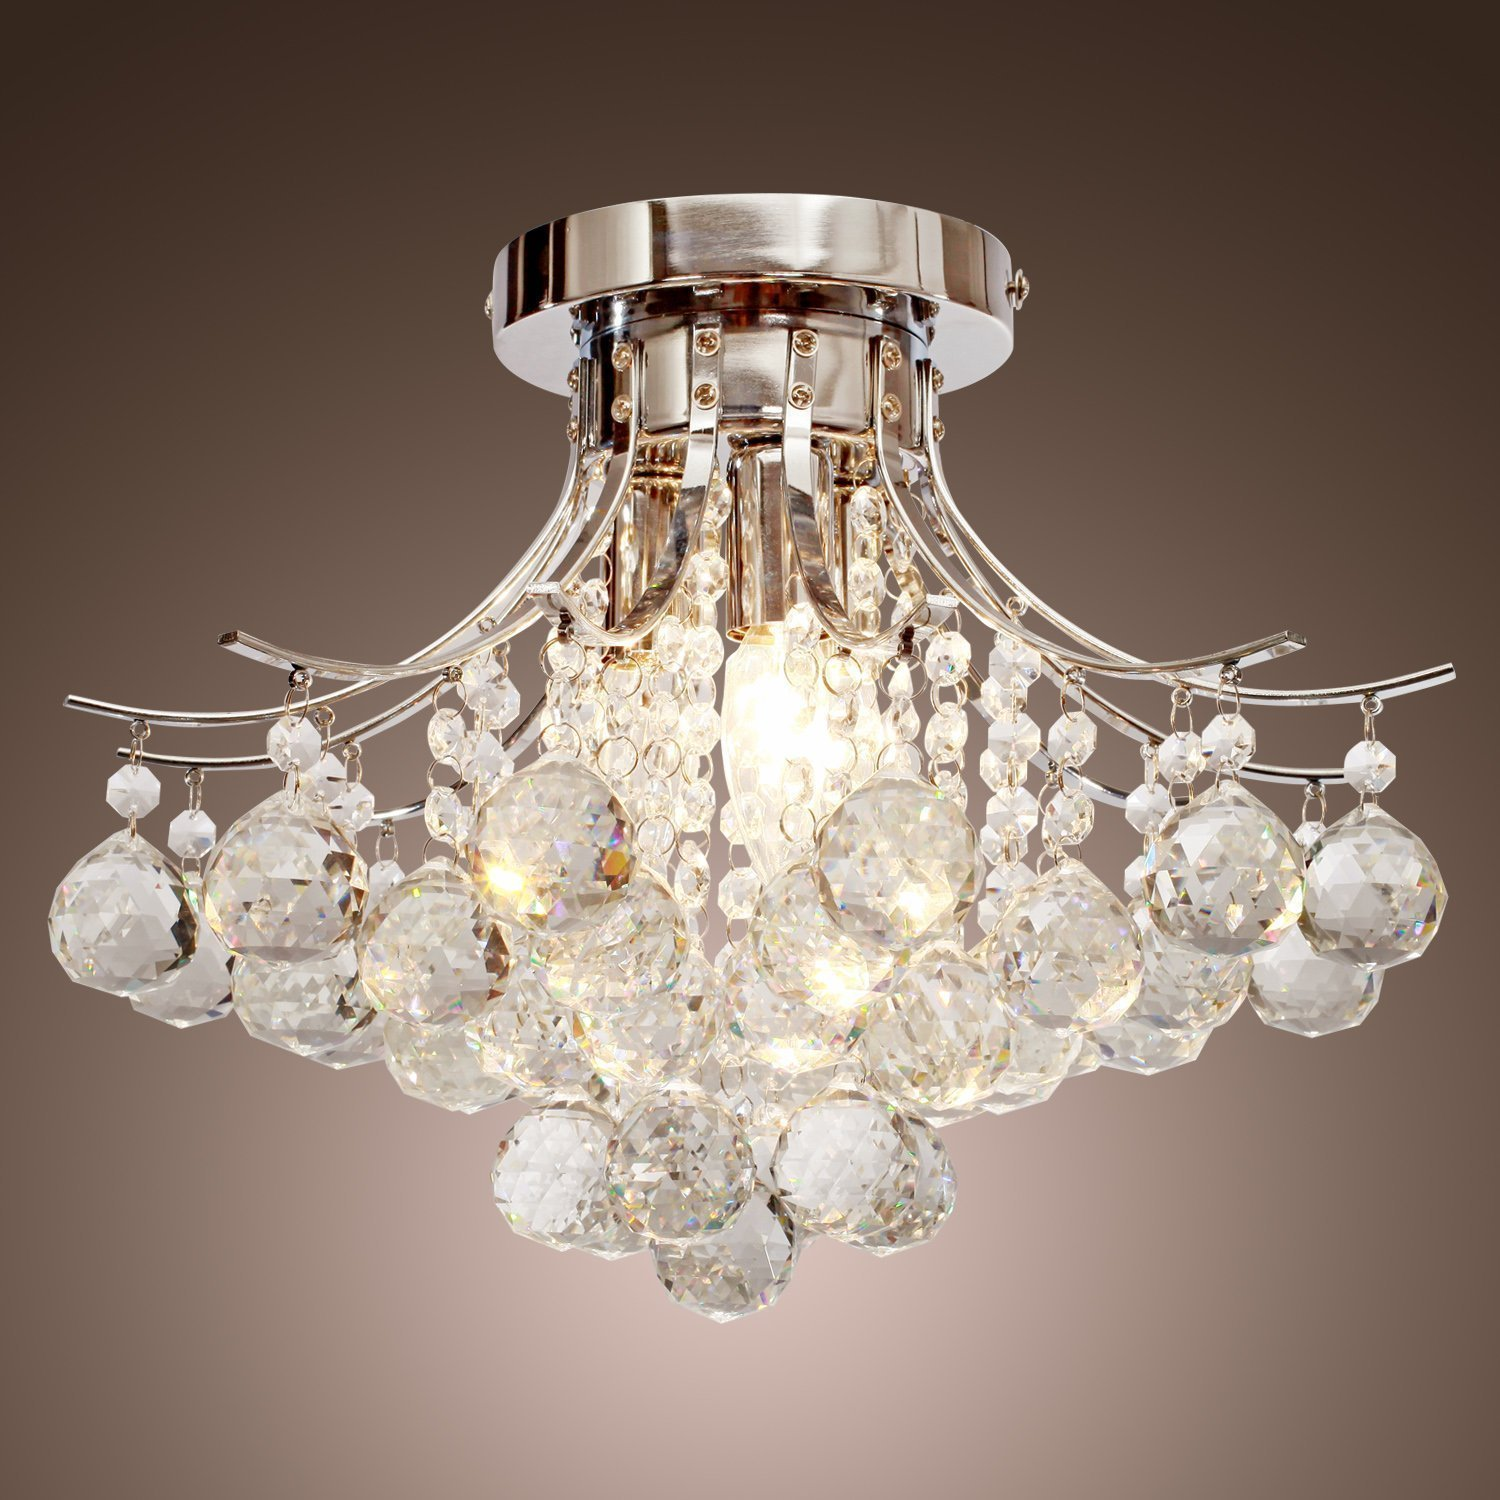 loco chrome finish crystal chandelier with  lights mini style flush mountceiling light fixture for study roomoffice dining room bedroom . loco chrome finish crystal chandelier with  lights mini style